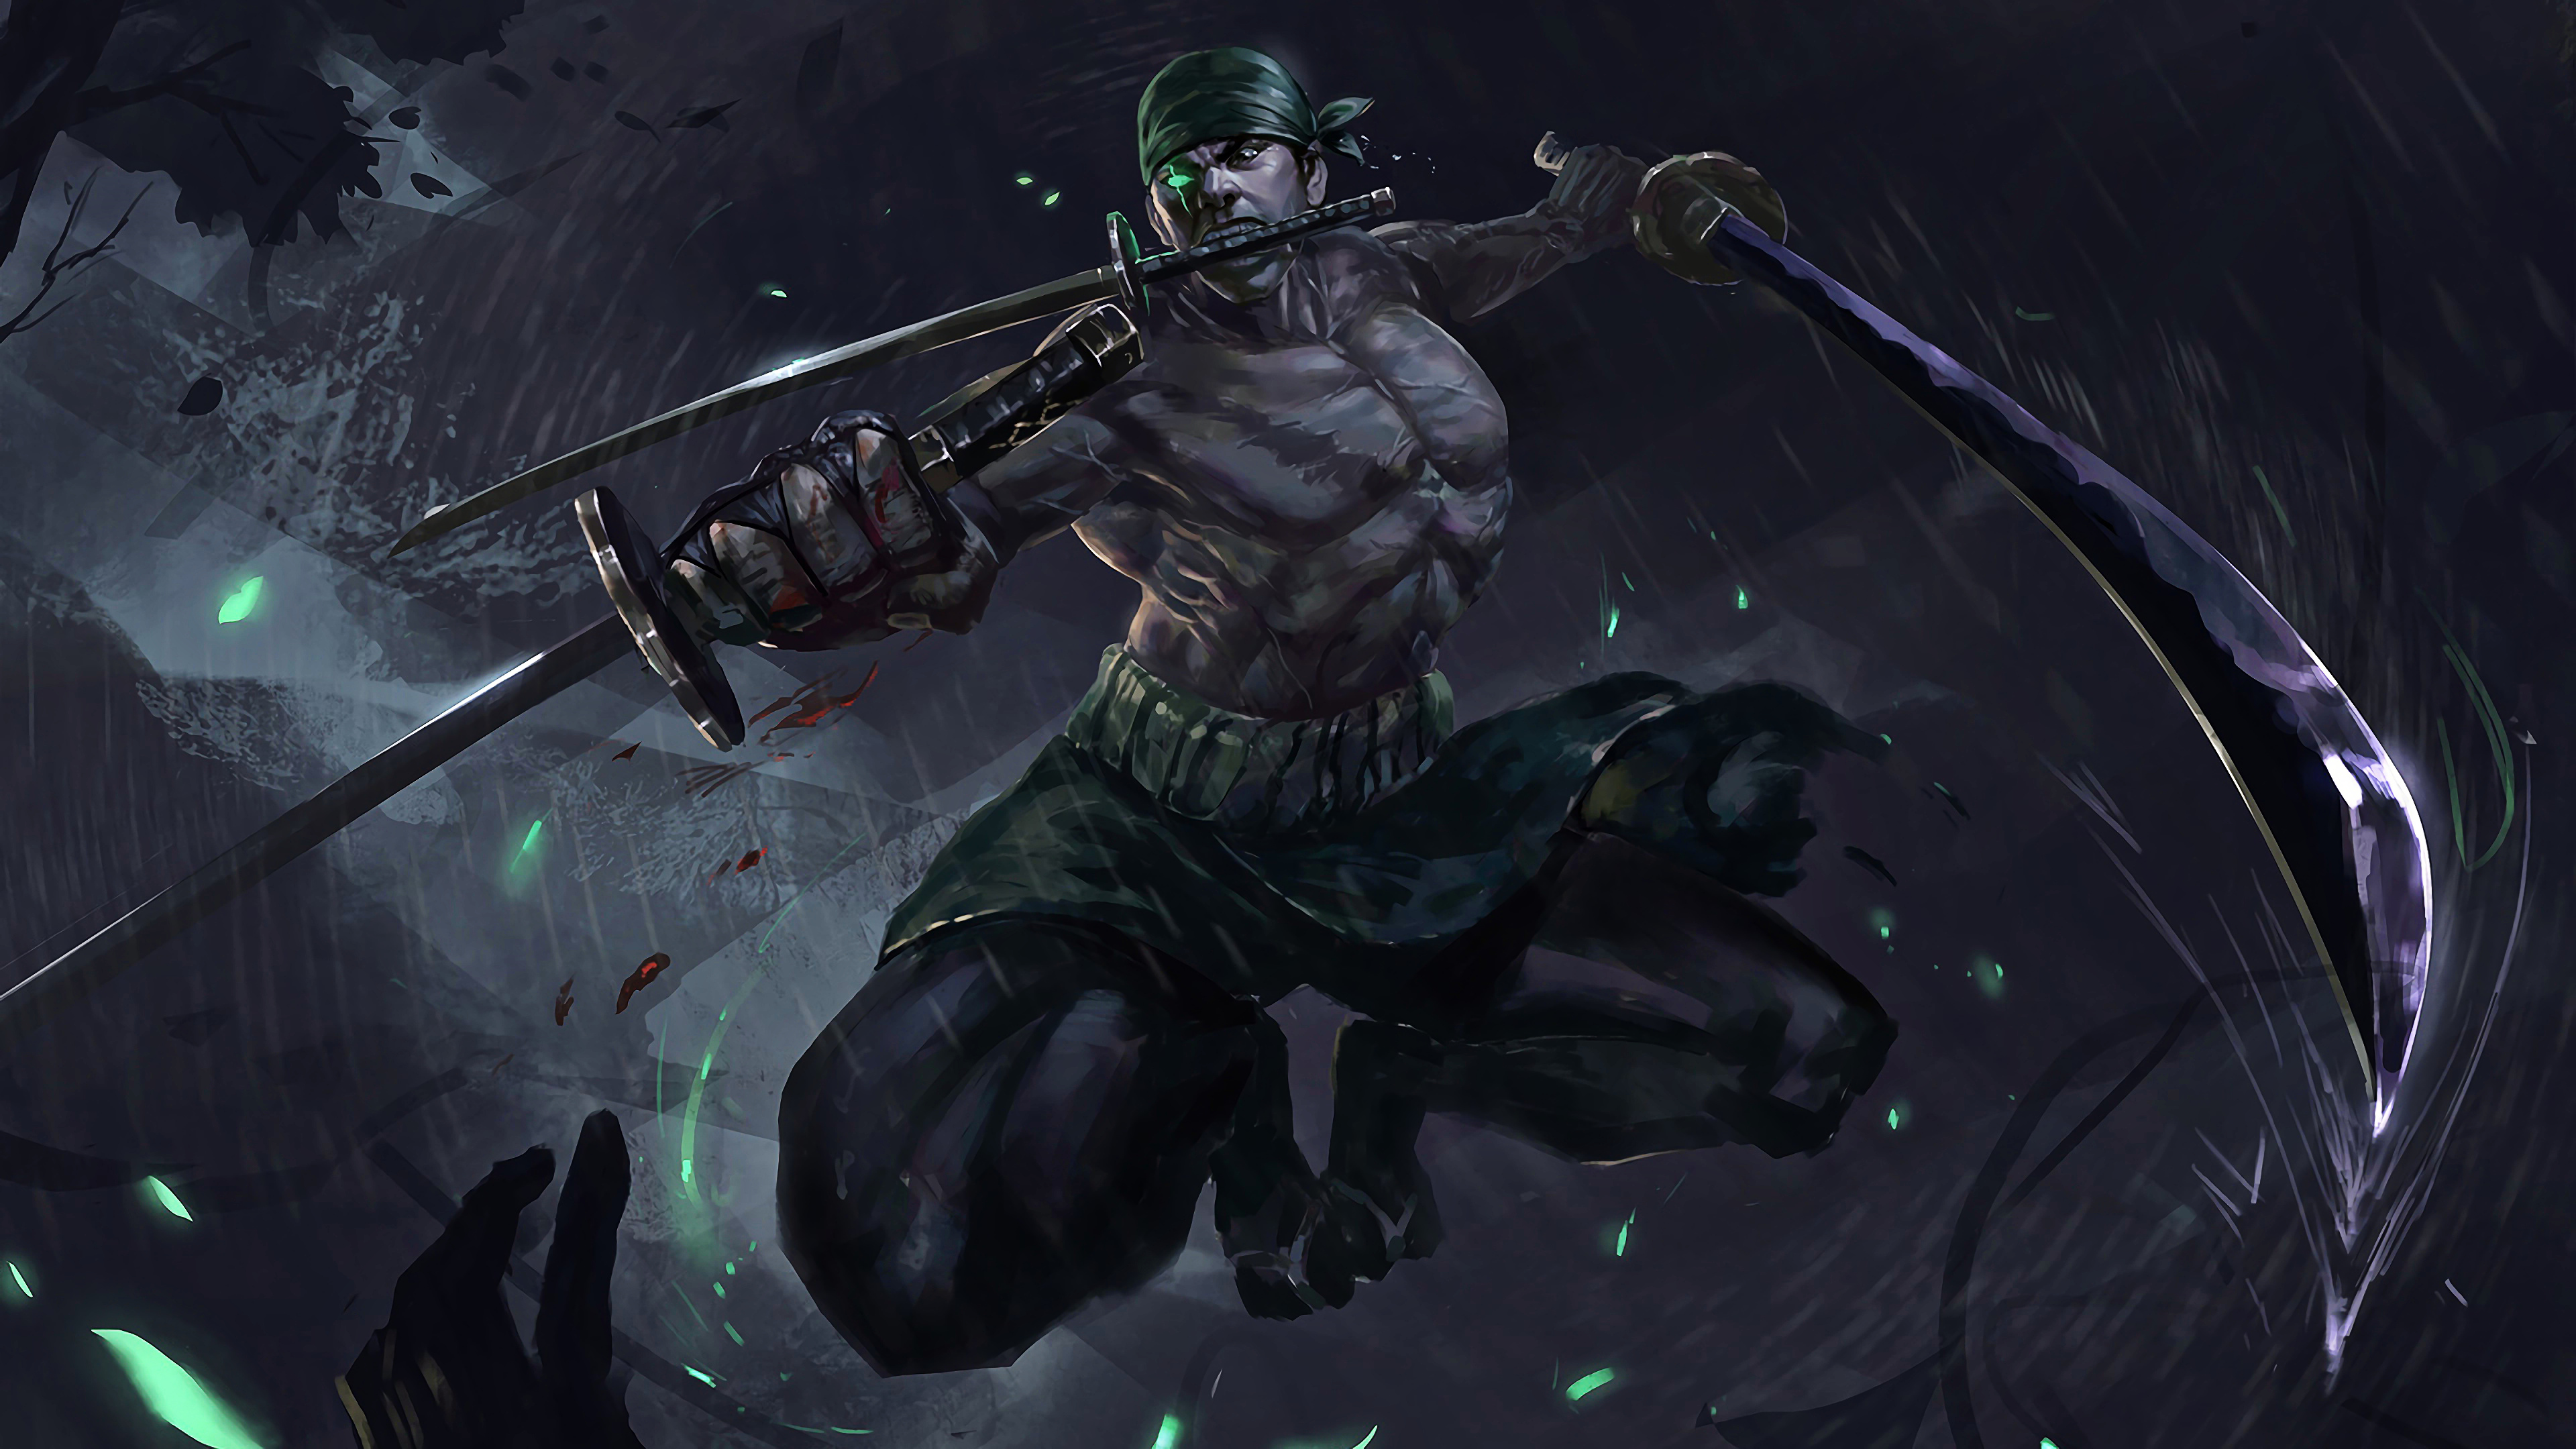 Roronoa Zoro Wallpaper Hd Posted By Samantha Tremblay